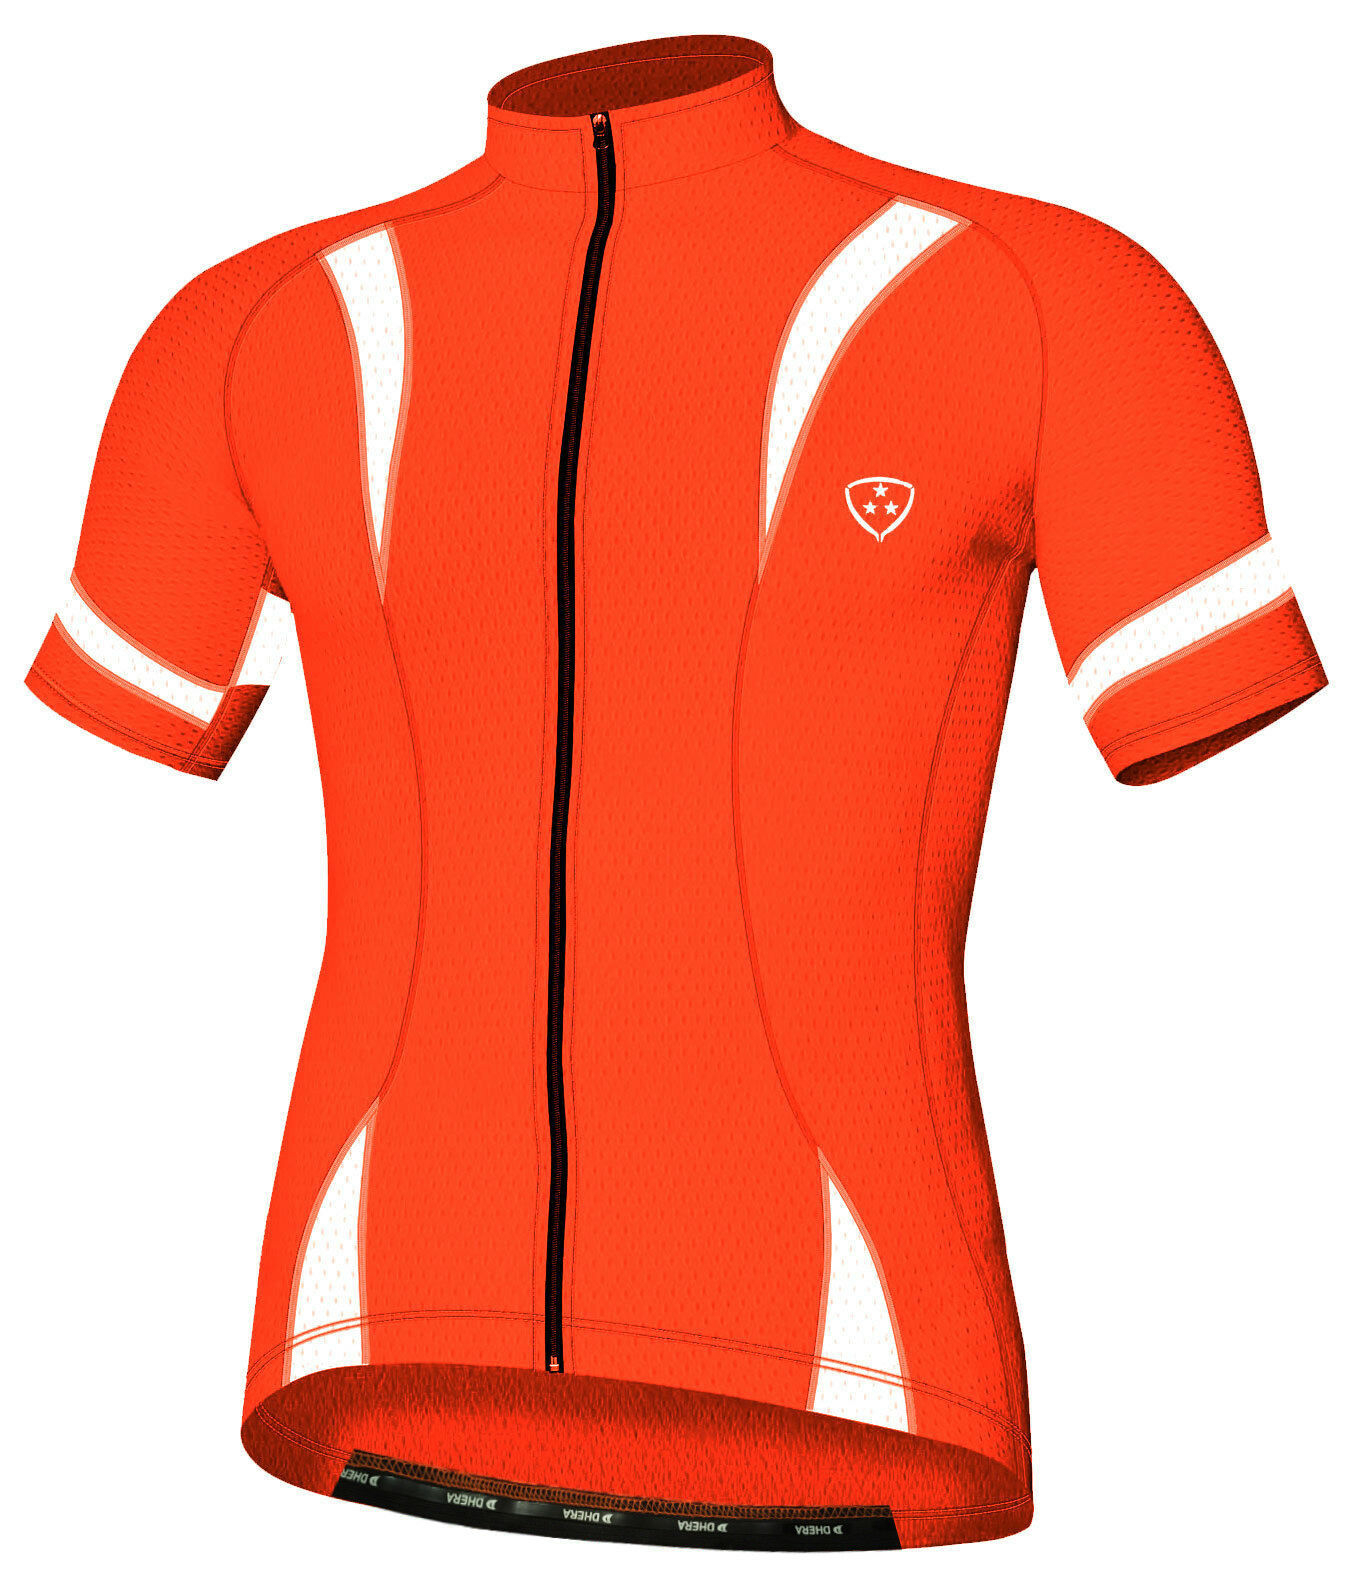 52ab434de DHERA Mens Cycling Jersey Breathable Half Sleeve Lightweight Biking Tops